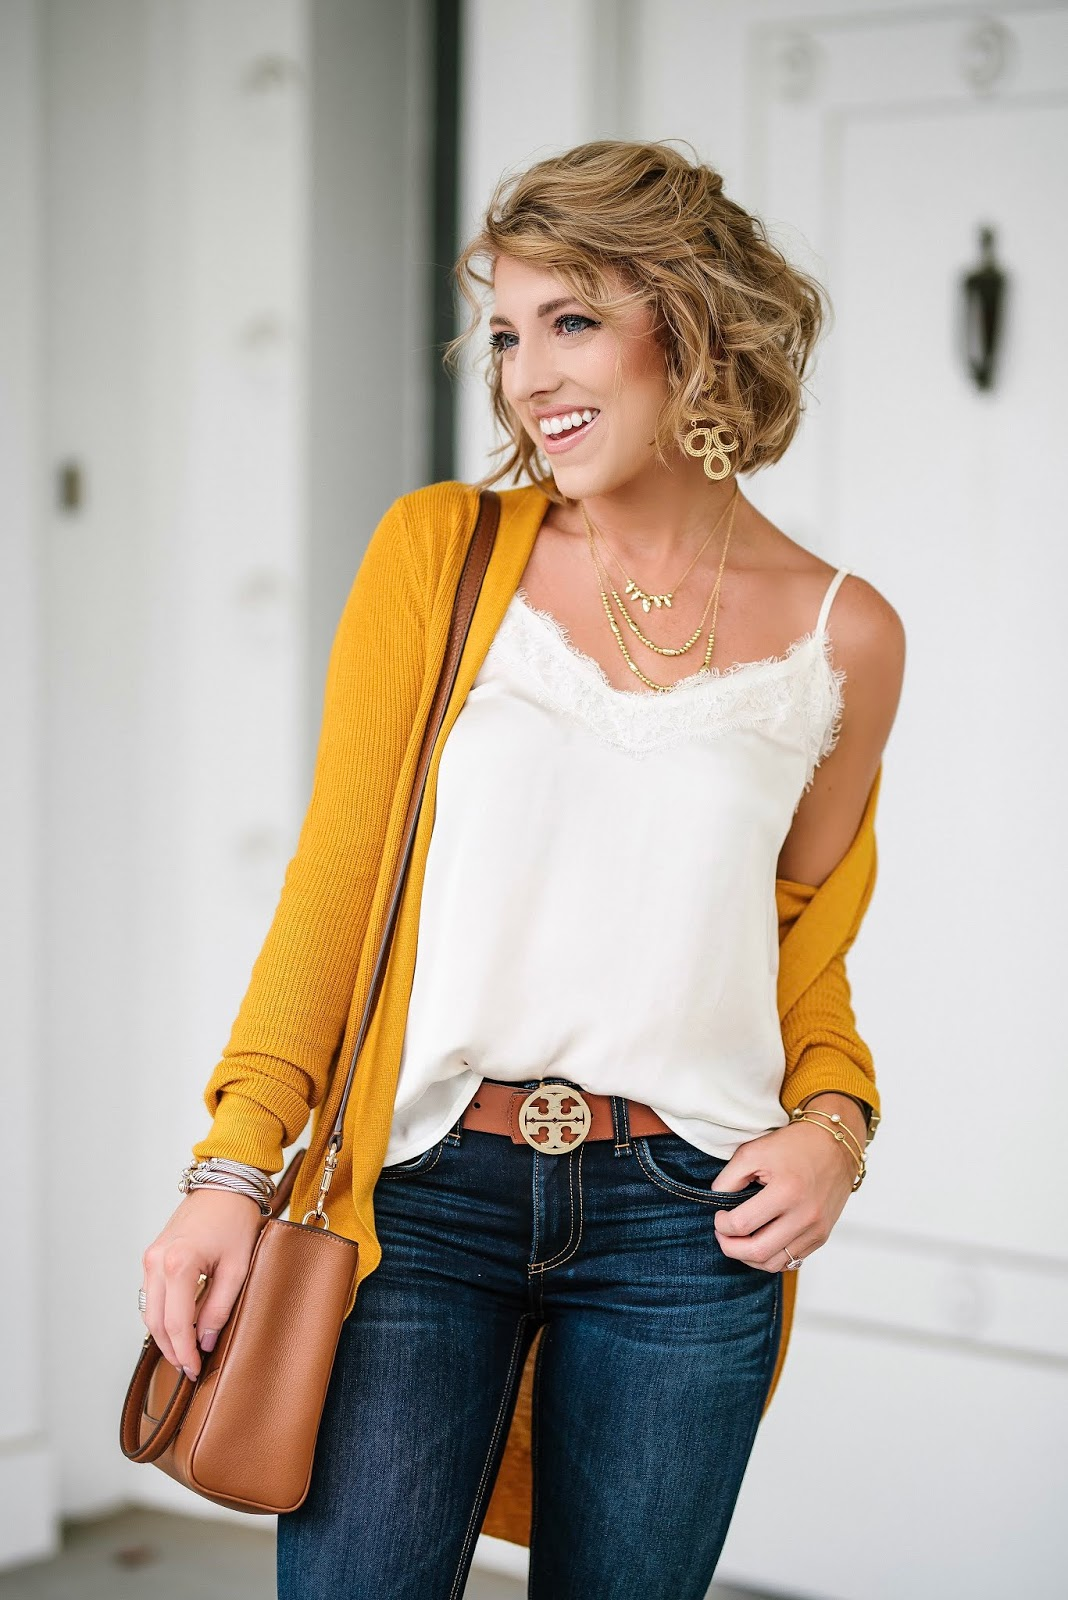 Under $30 Mustard Yellow Cardigan - Target Style! - Something Delightful Blog @racheltimmerman